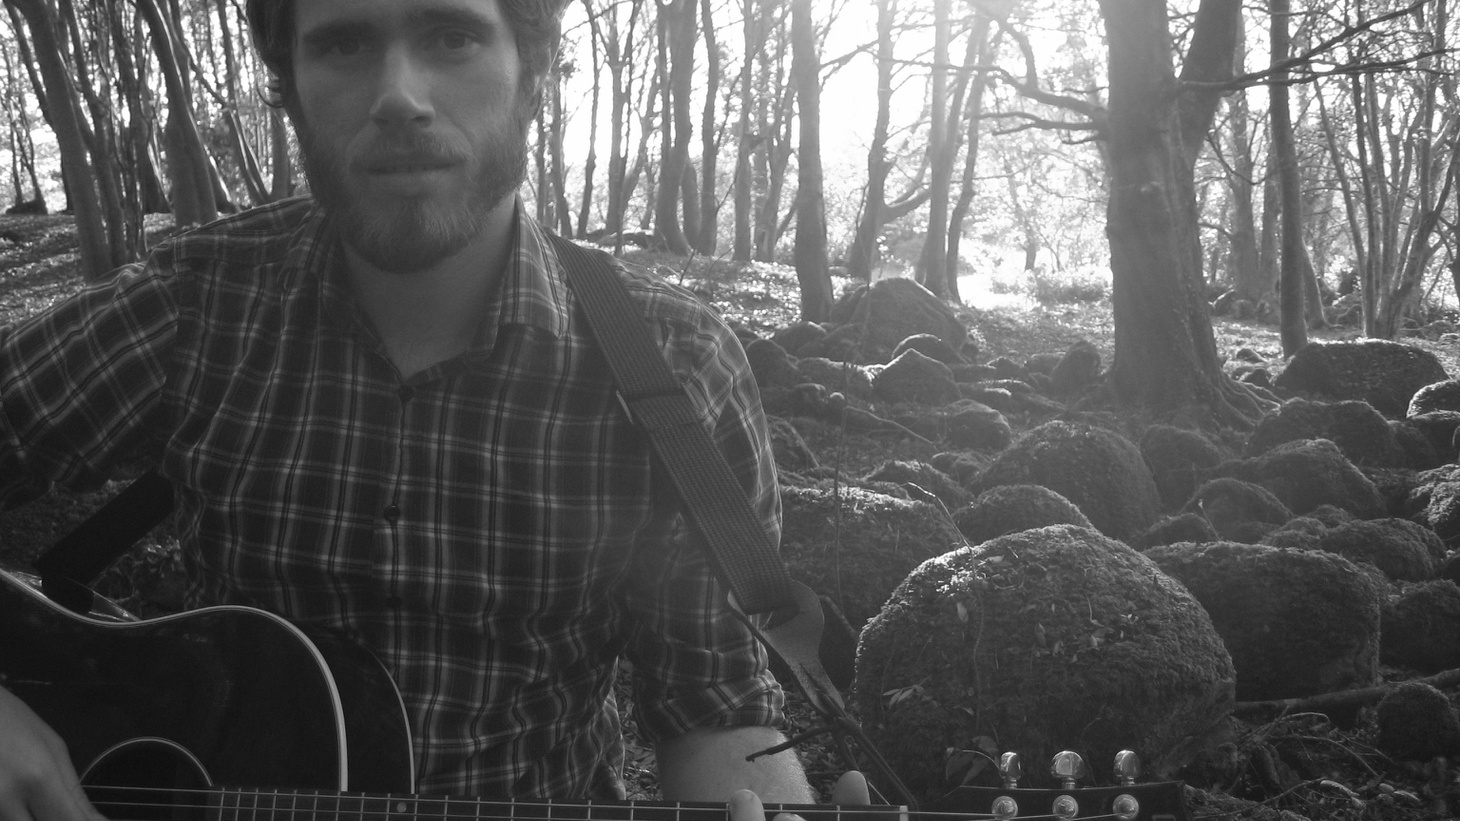 "Irish singer James Vincent McMorrow takes a sculptor's approach to songwriting, allowing melodies and lyrics to emerge. Recorded over a five month period in an isolated house by the sea, his debut opens with Today's Top Tune ""If I Had a Boat."""